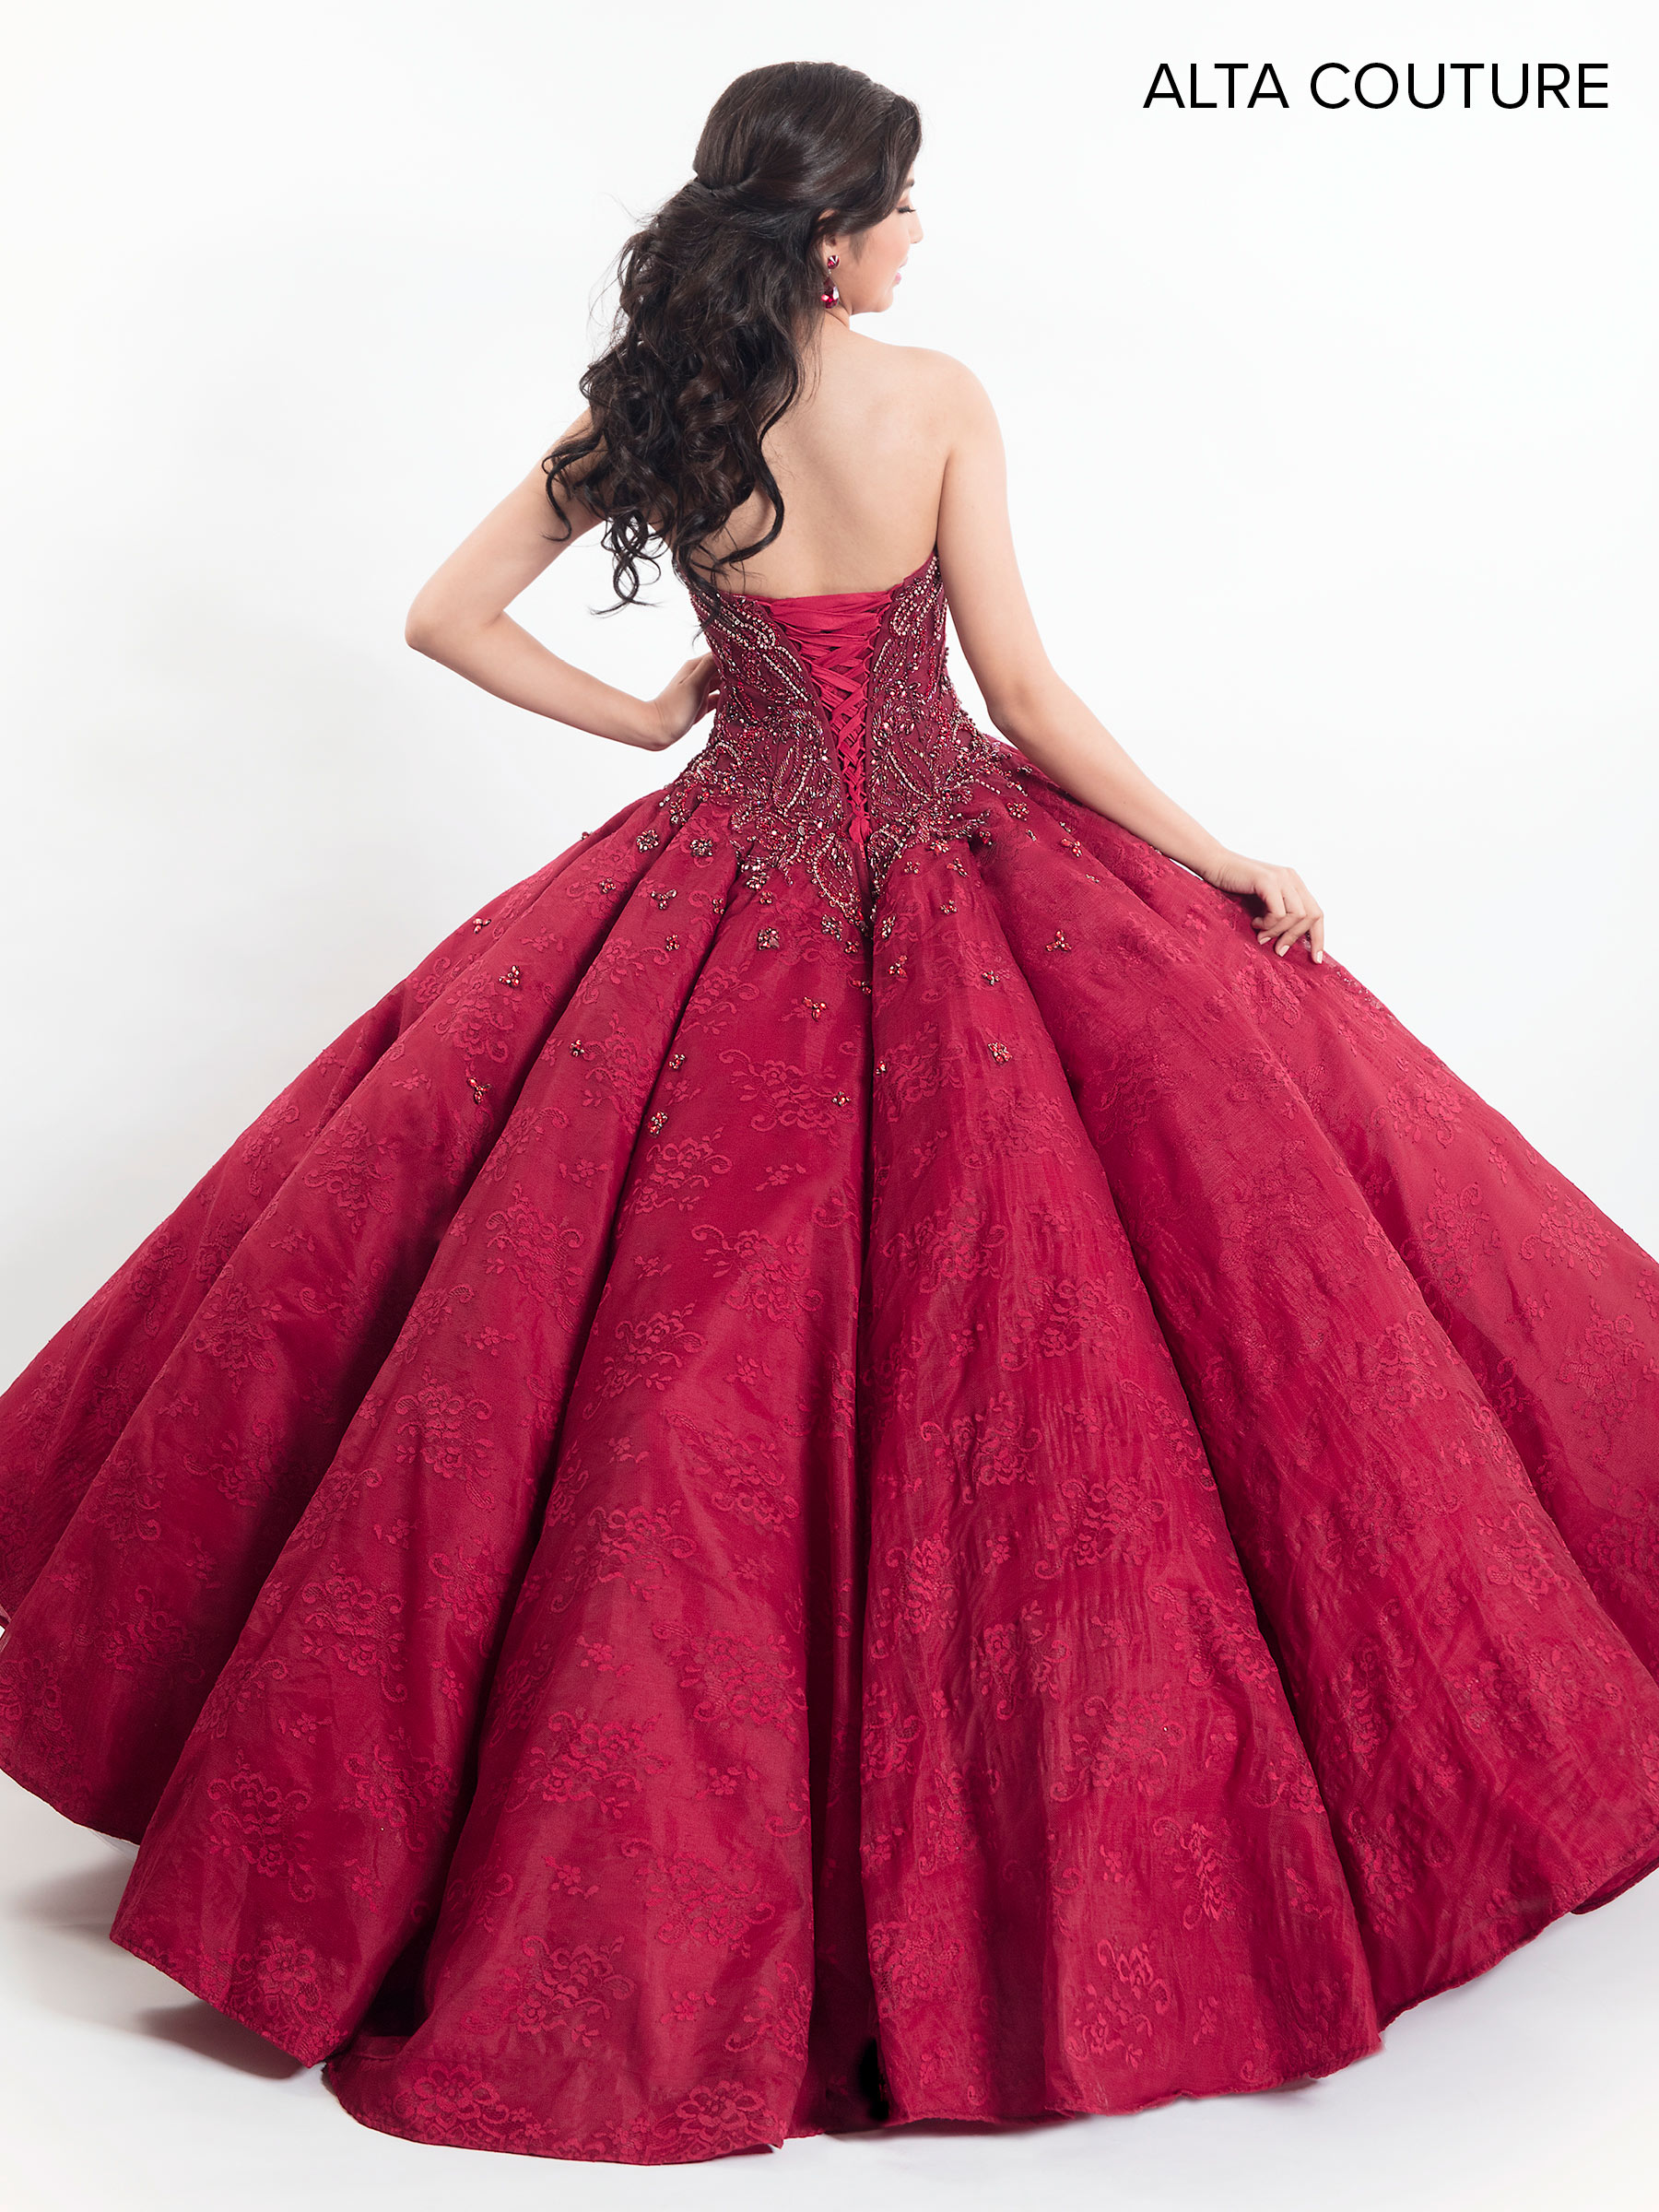 Quinceanera Couture Dresses | Alta Couture | Style - MQ3012